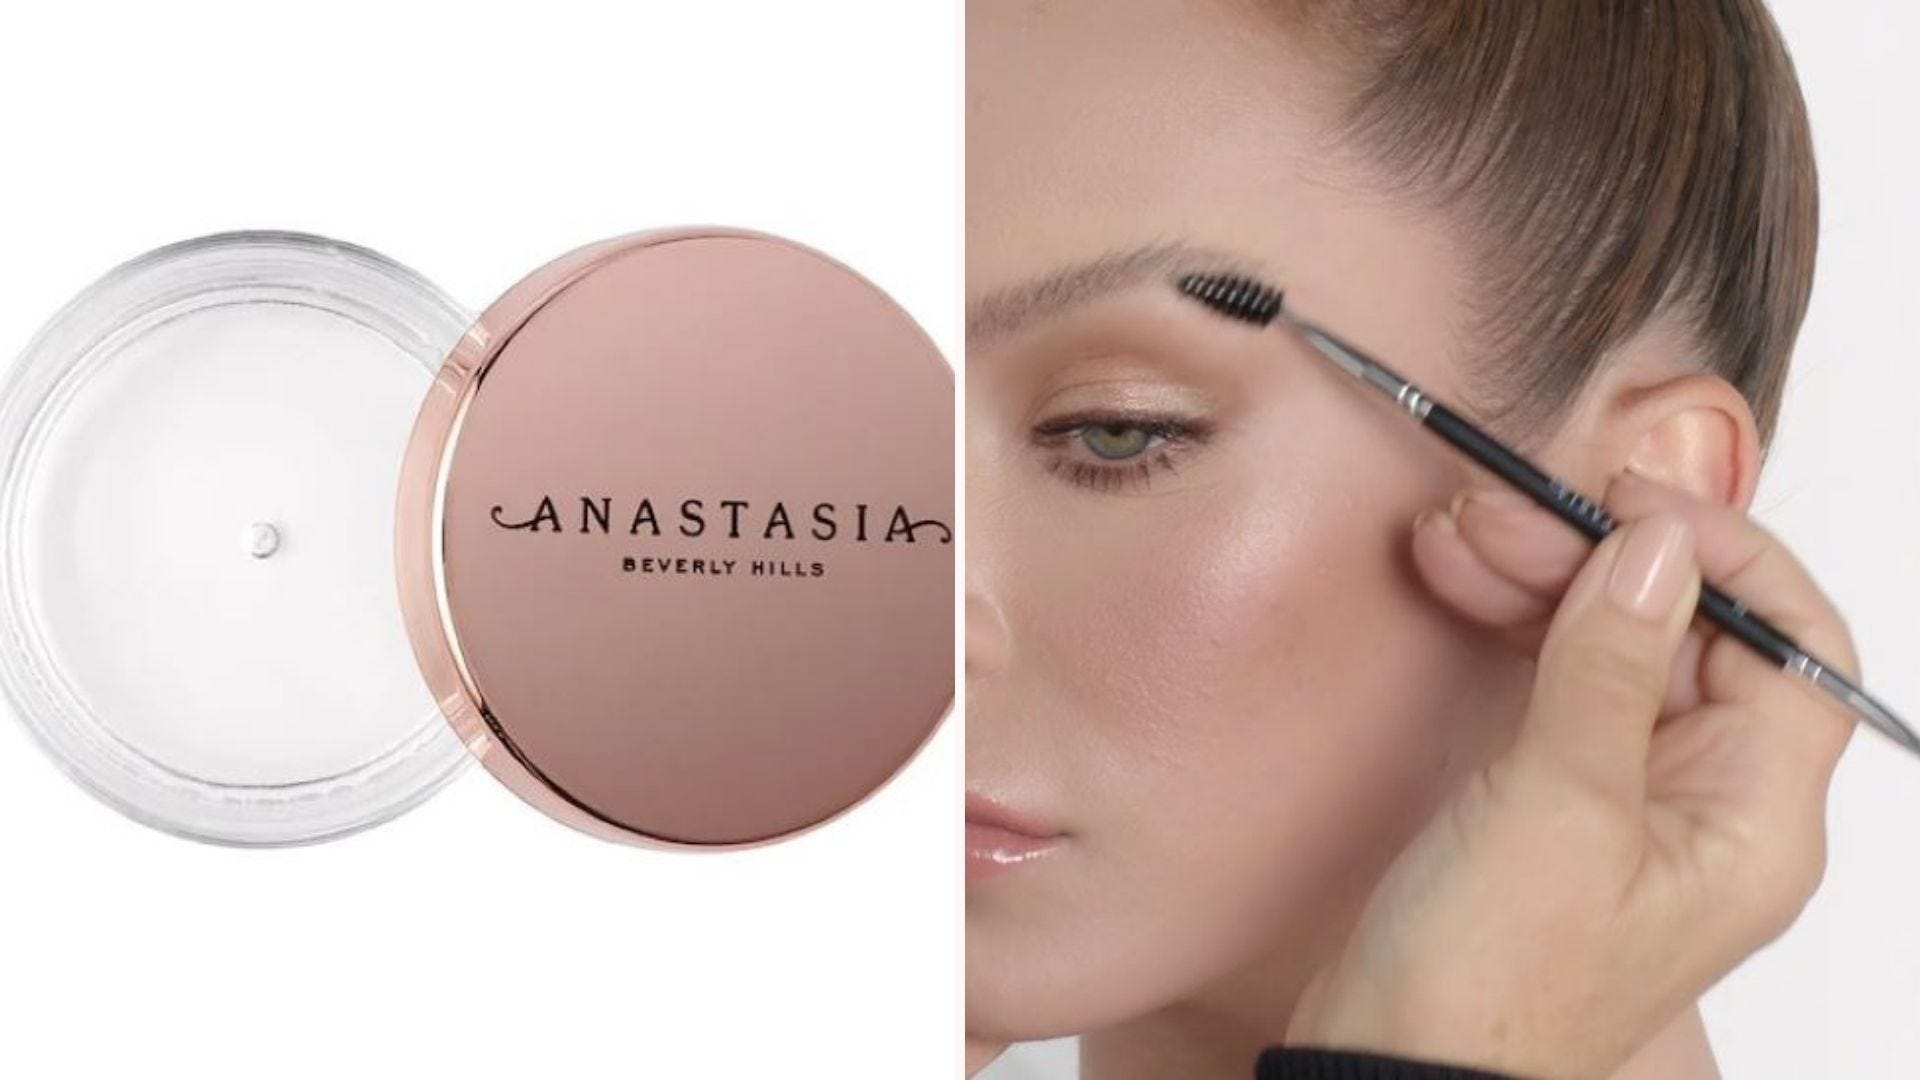 The Anastasia Brow Freeze Styling Wax and someone applying it to a woman's eyebrow with an applicator.